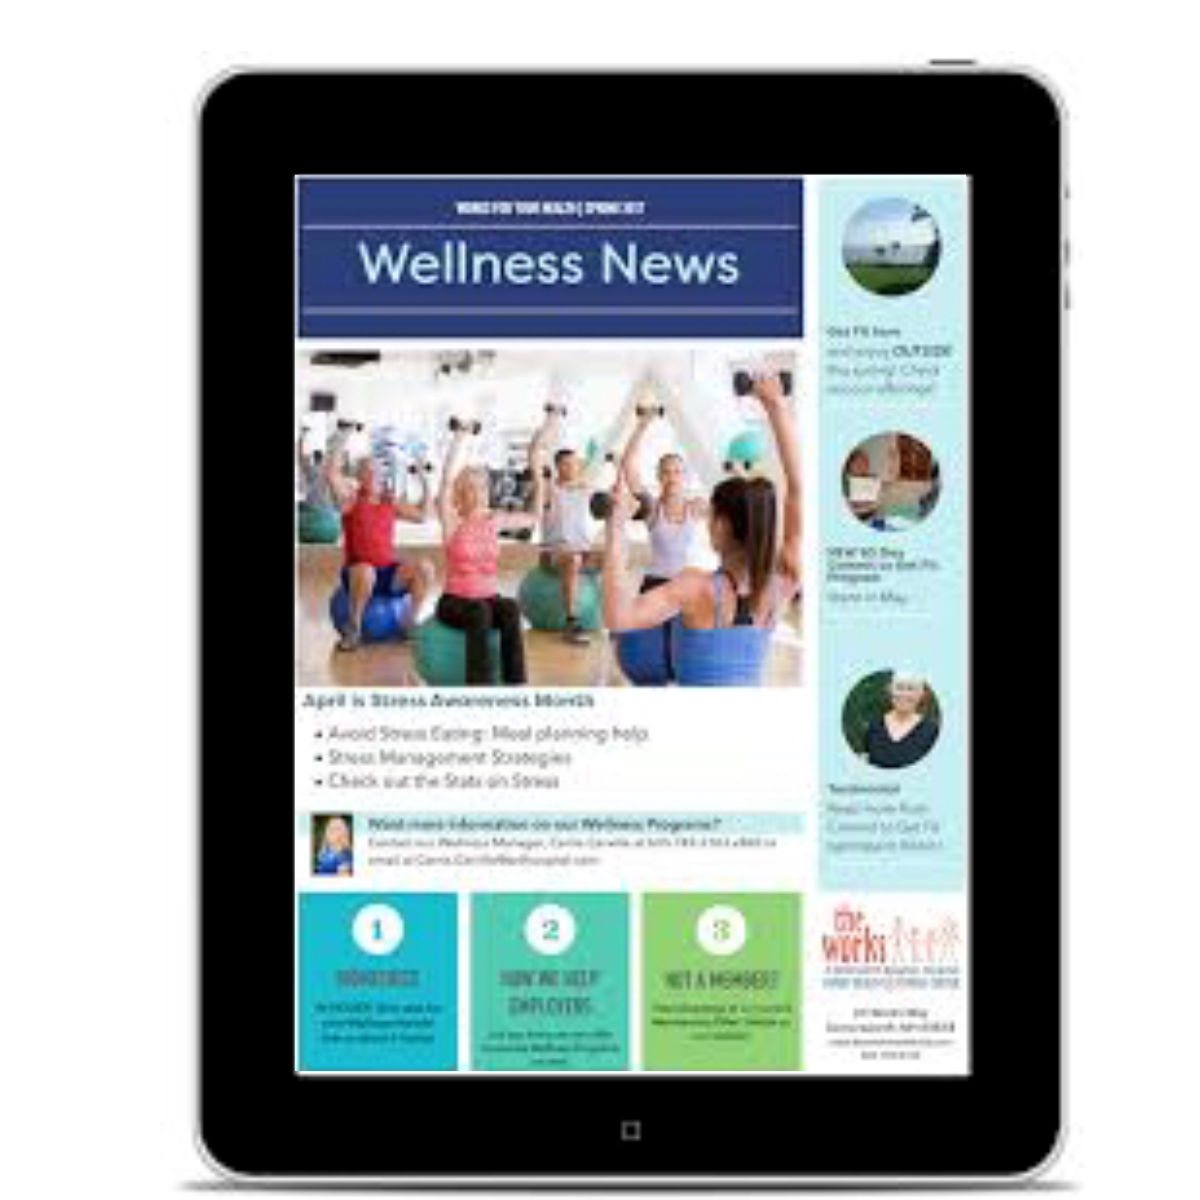 The Fitness Newsletter